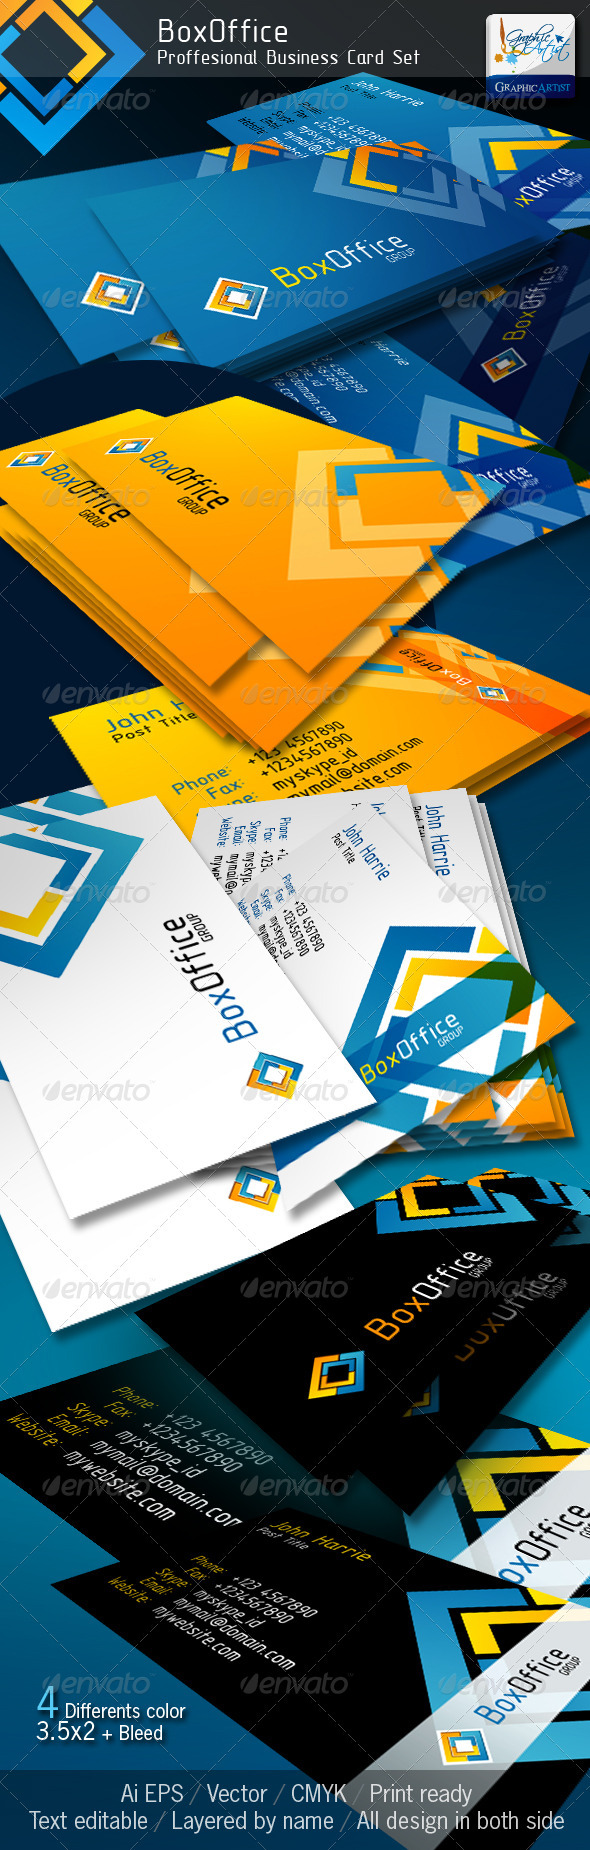 BoxOffice Official Business Card